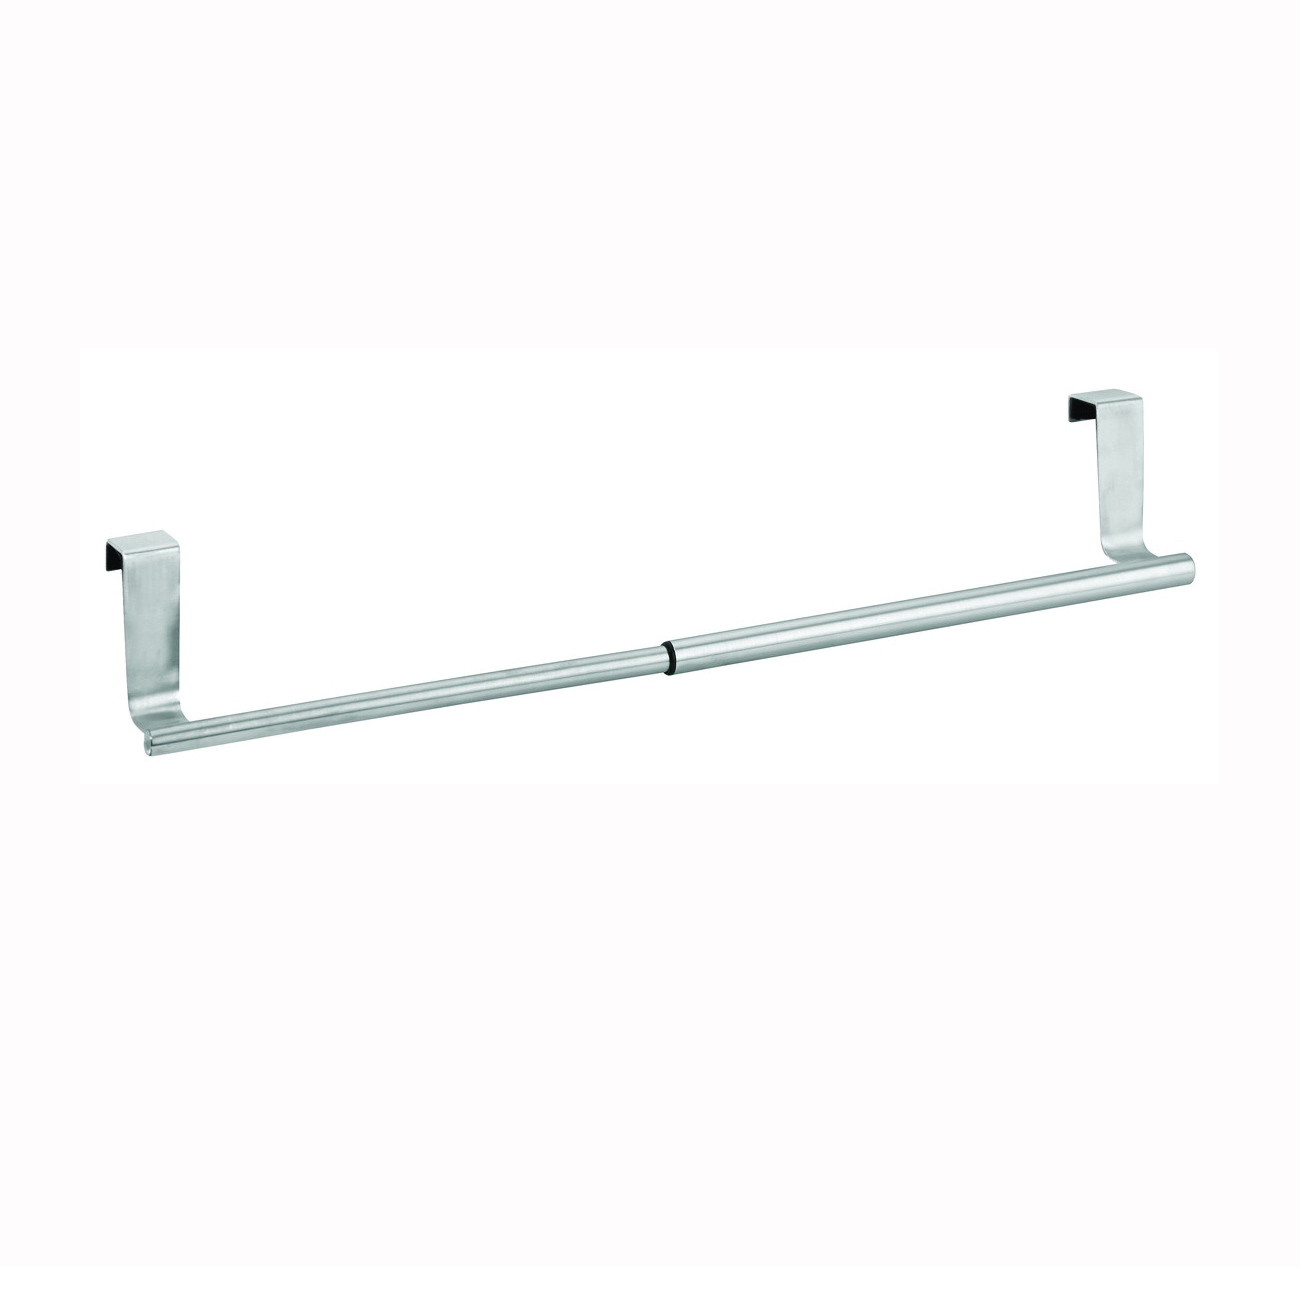 Picture of iDESIGN 29360 Towel Bar, Stainless Steel, Brushed, Surface Mounting